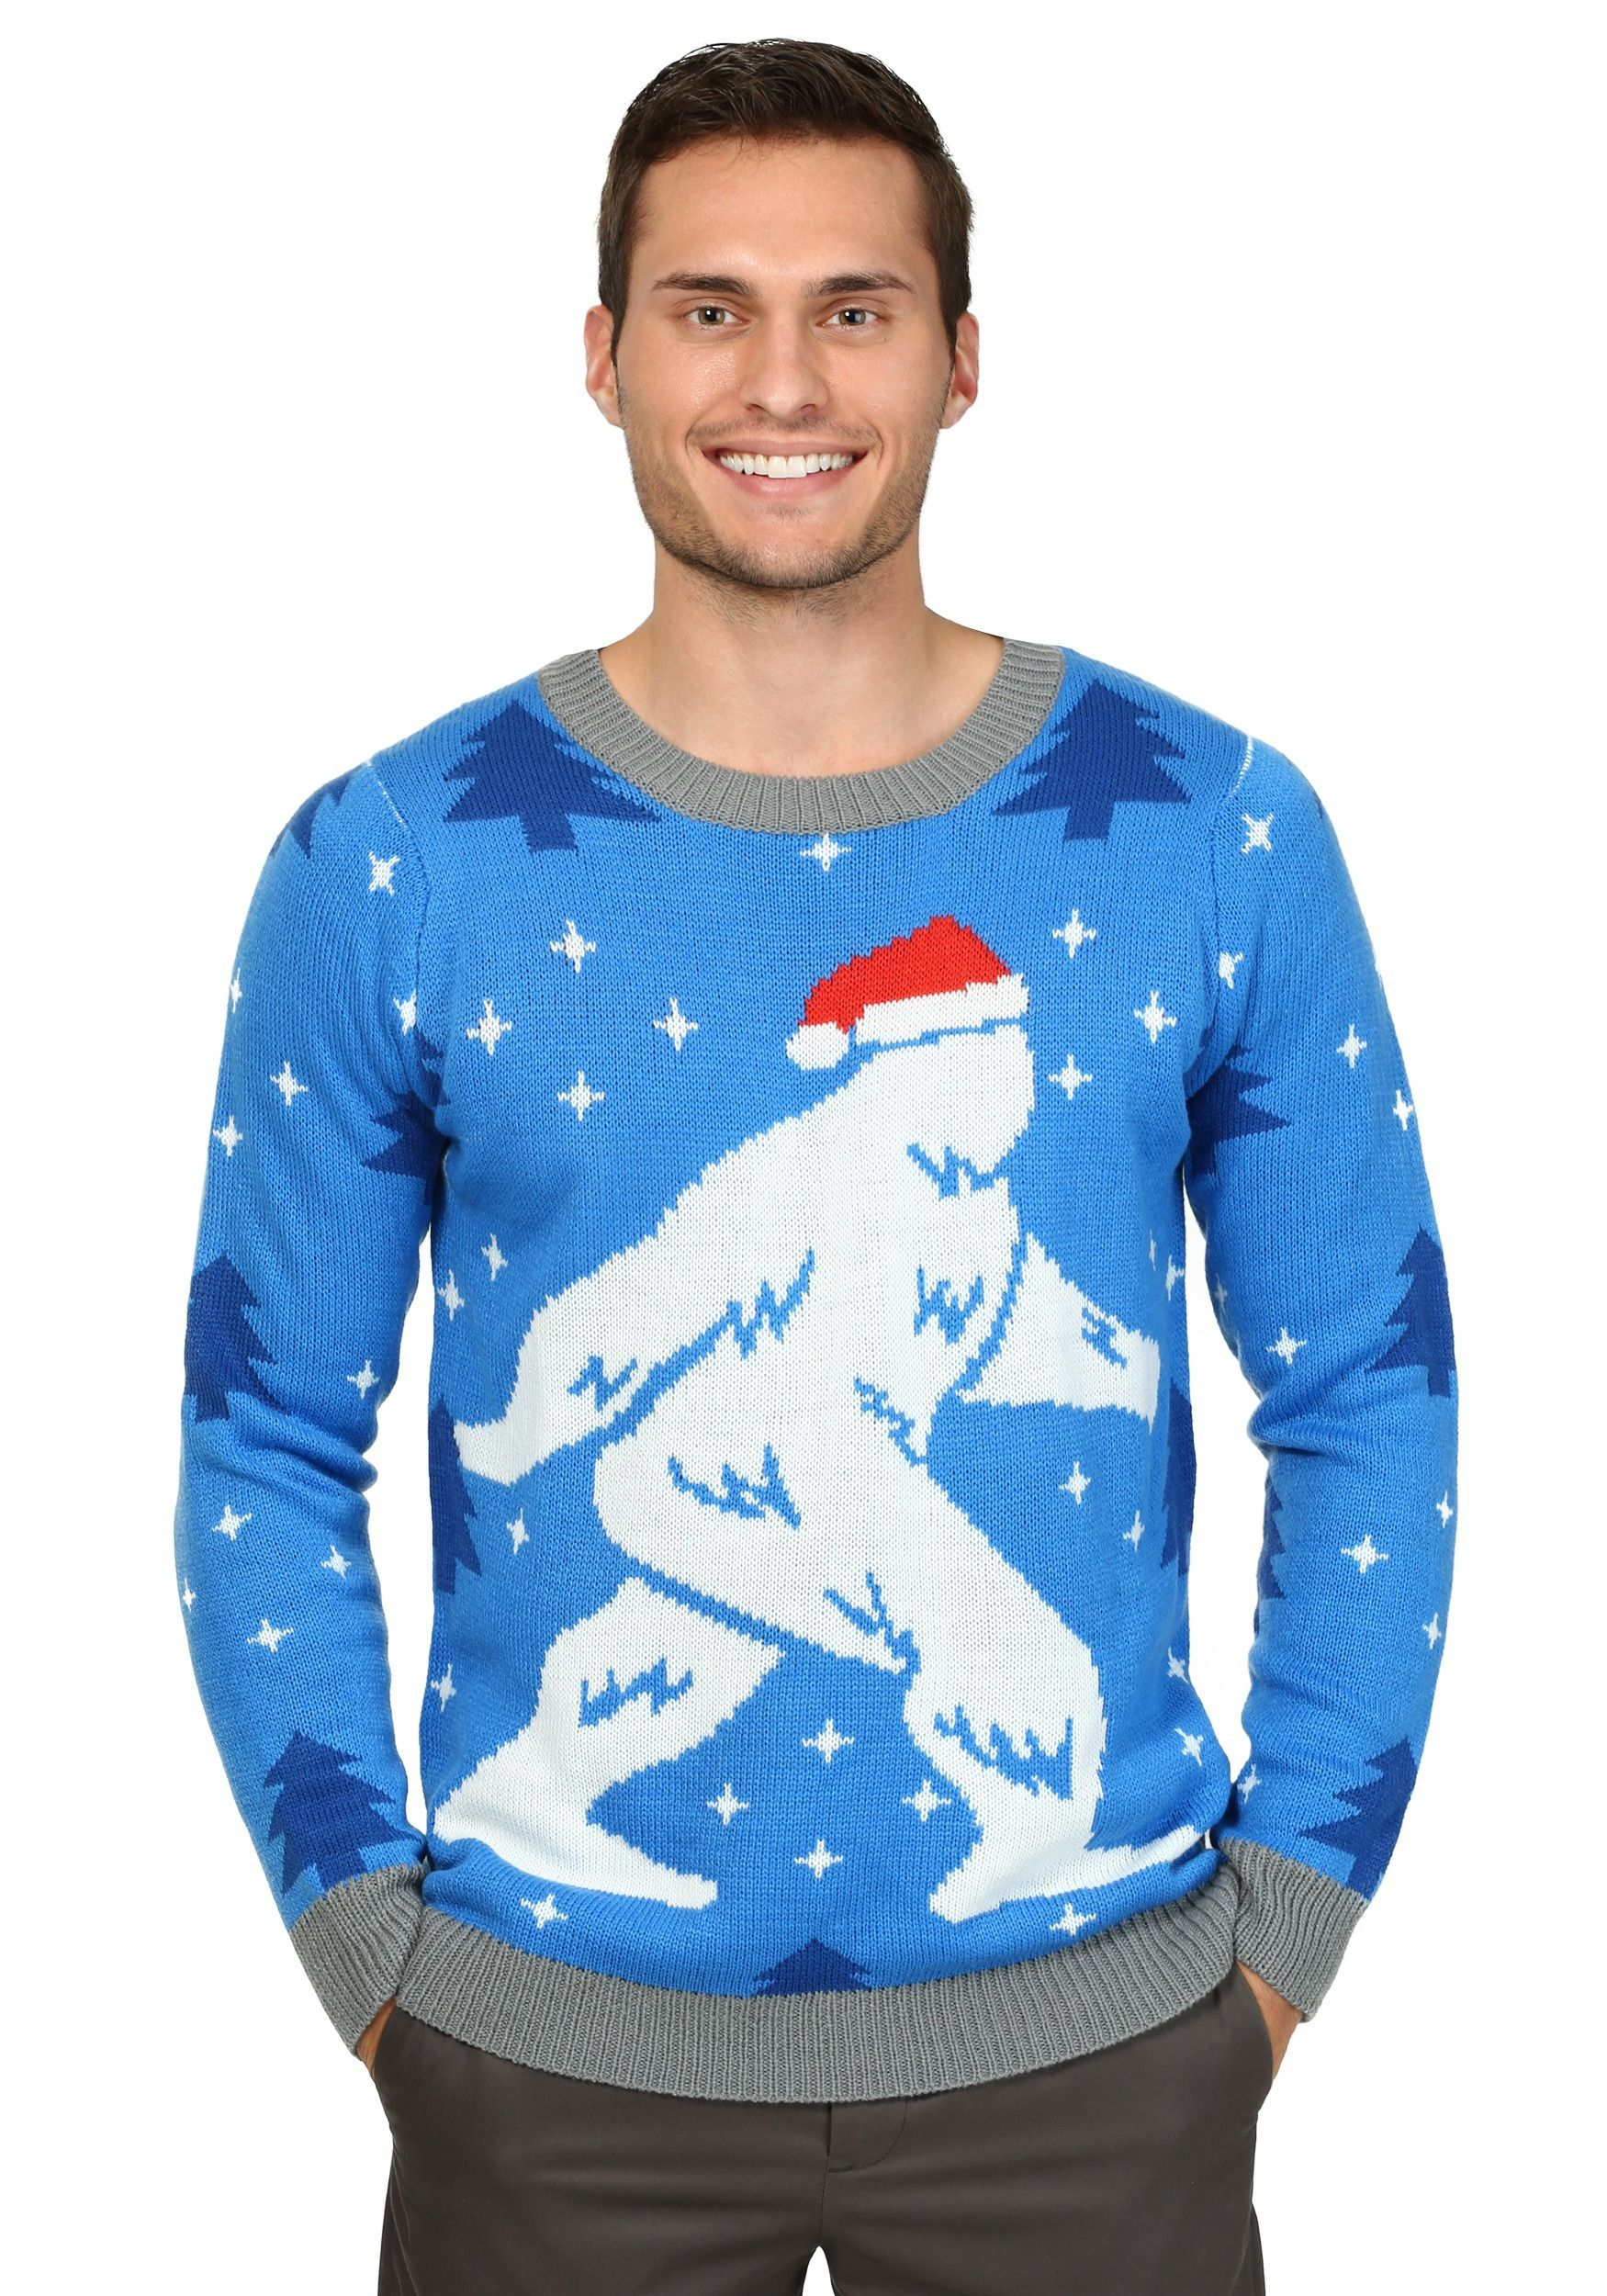 The Best Worst Ugly Sweaters | Santa is the Yeti